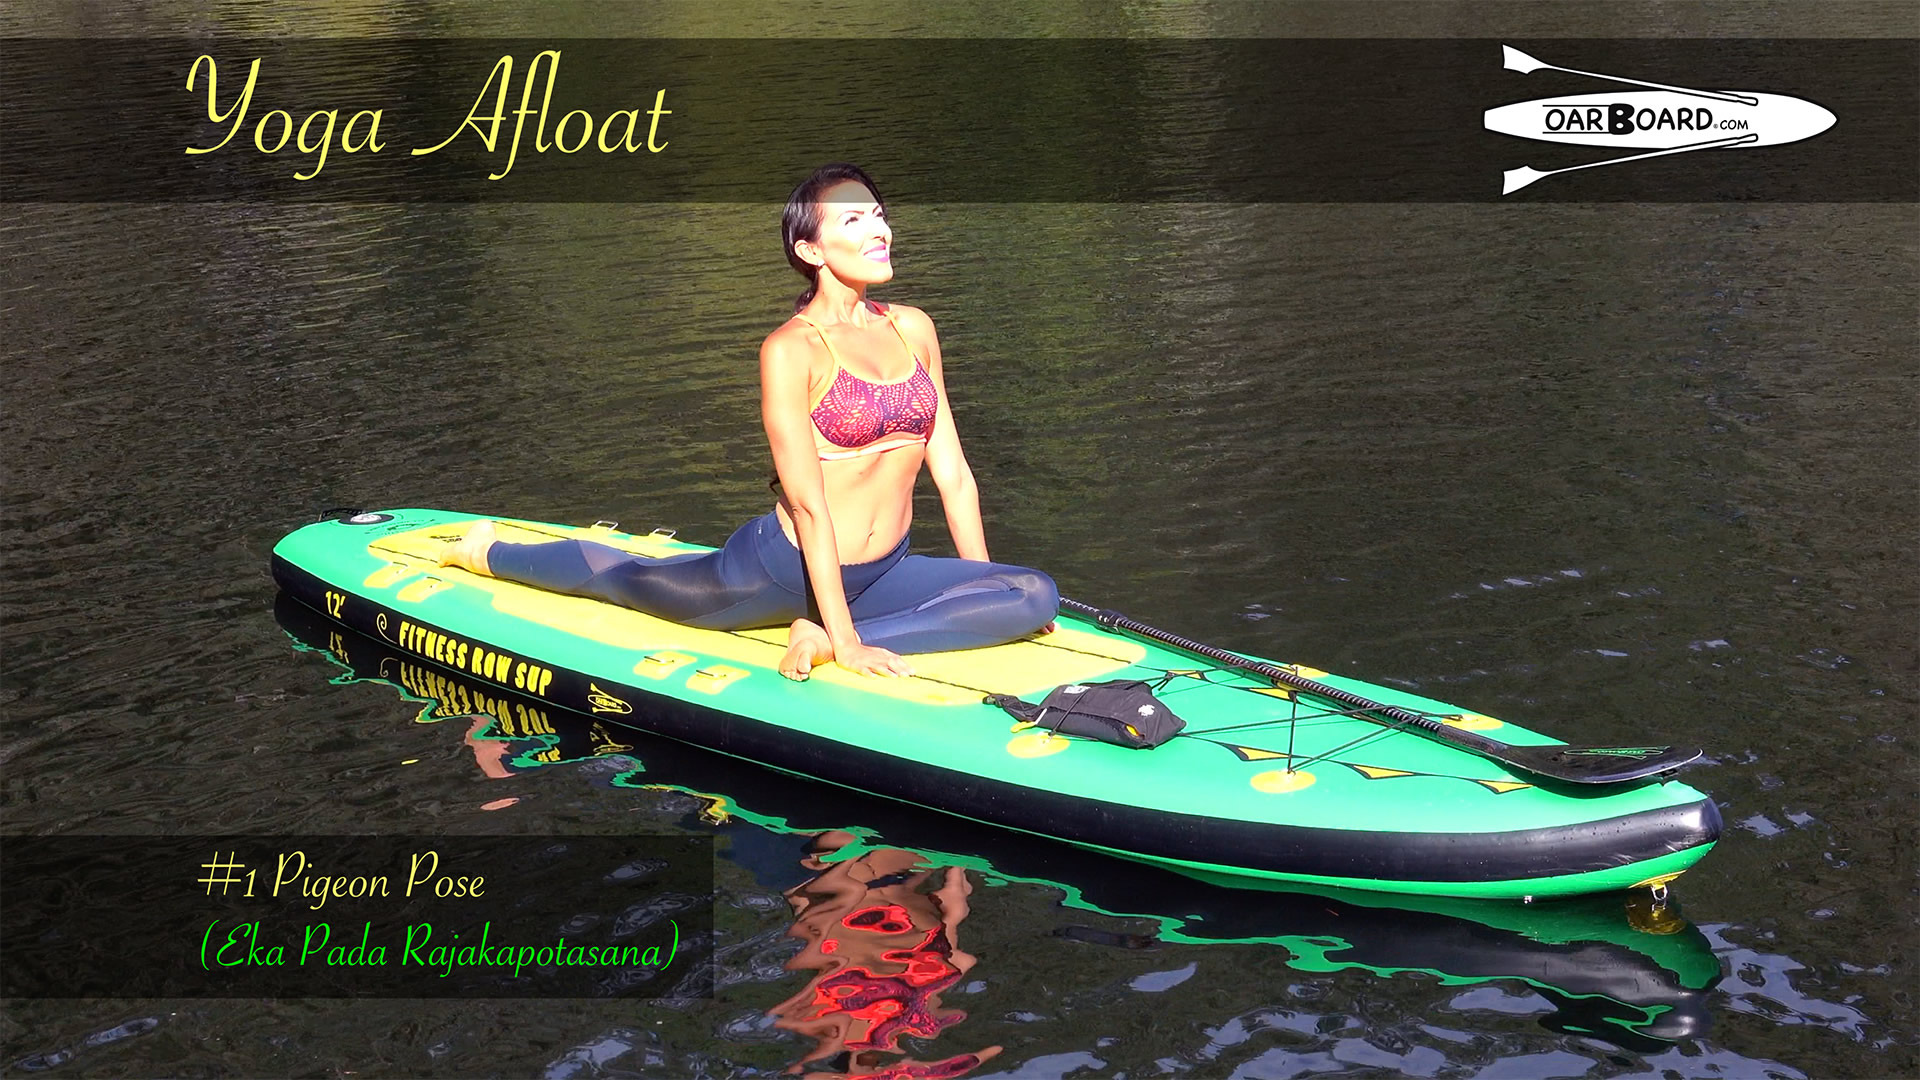 Oar-Board-Fit-12-Stand-Up-Paddle-Board-Yoga-1-Pigeon-Pose